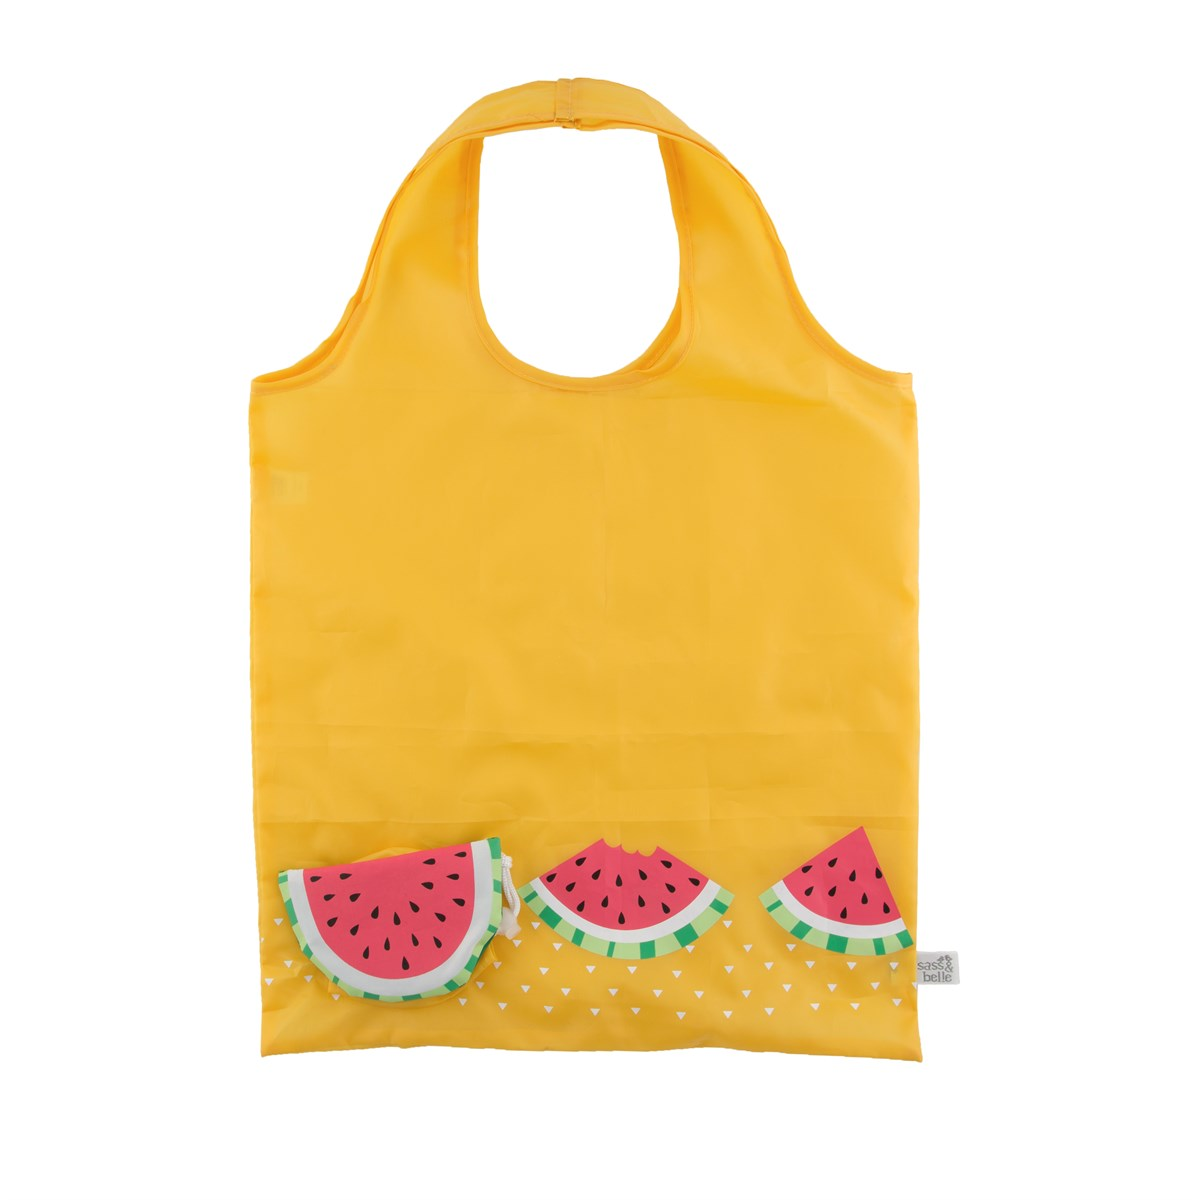 www.lulu-shop.fr sac tote bag watermelon